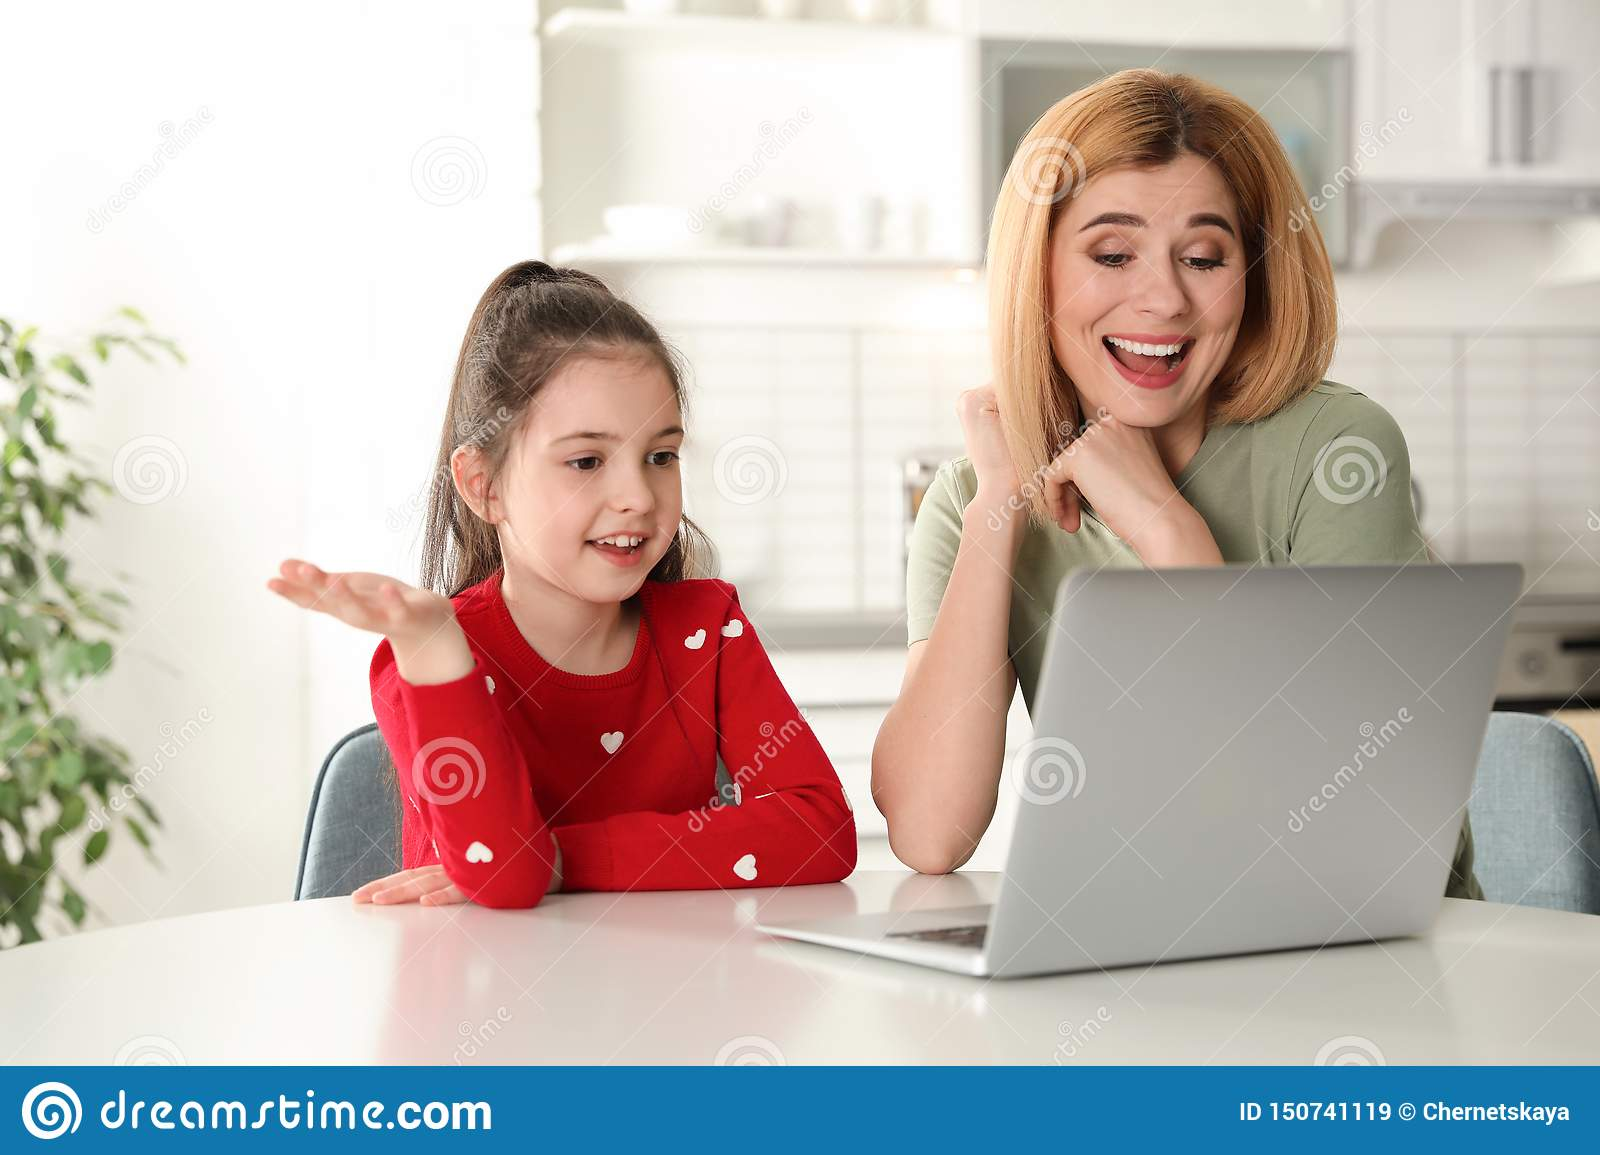 Mother And Her Daughter Using Video Chat On Laptop At